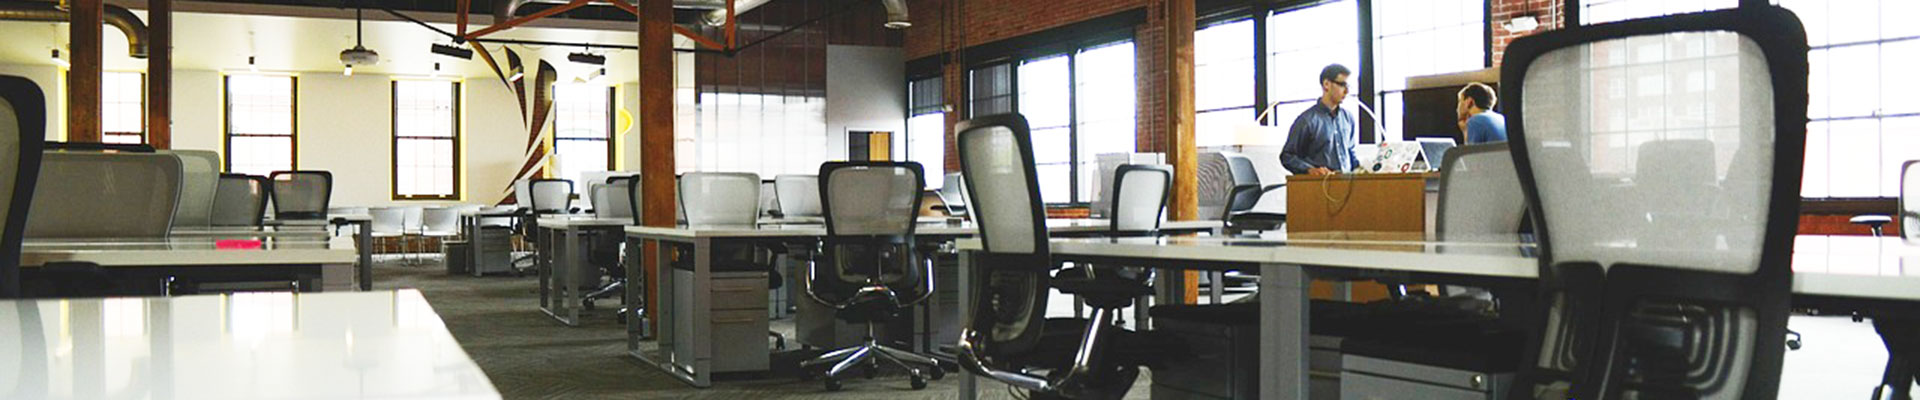 Laber's Office Furniture | New & Used Office Furniture in Hagerstown, MD!